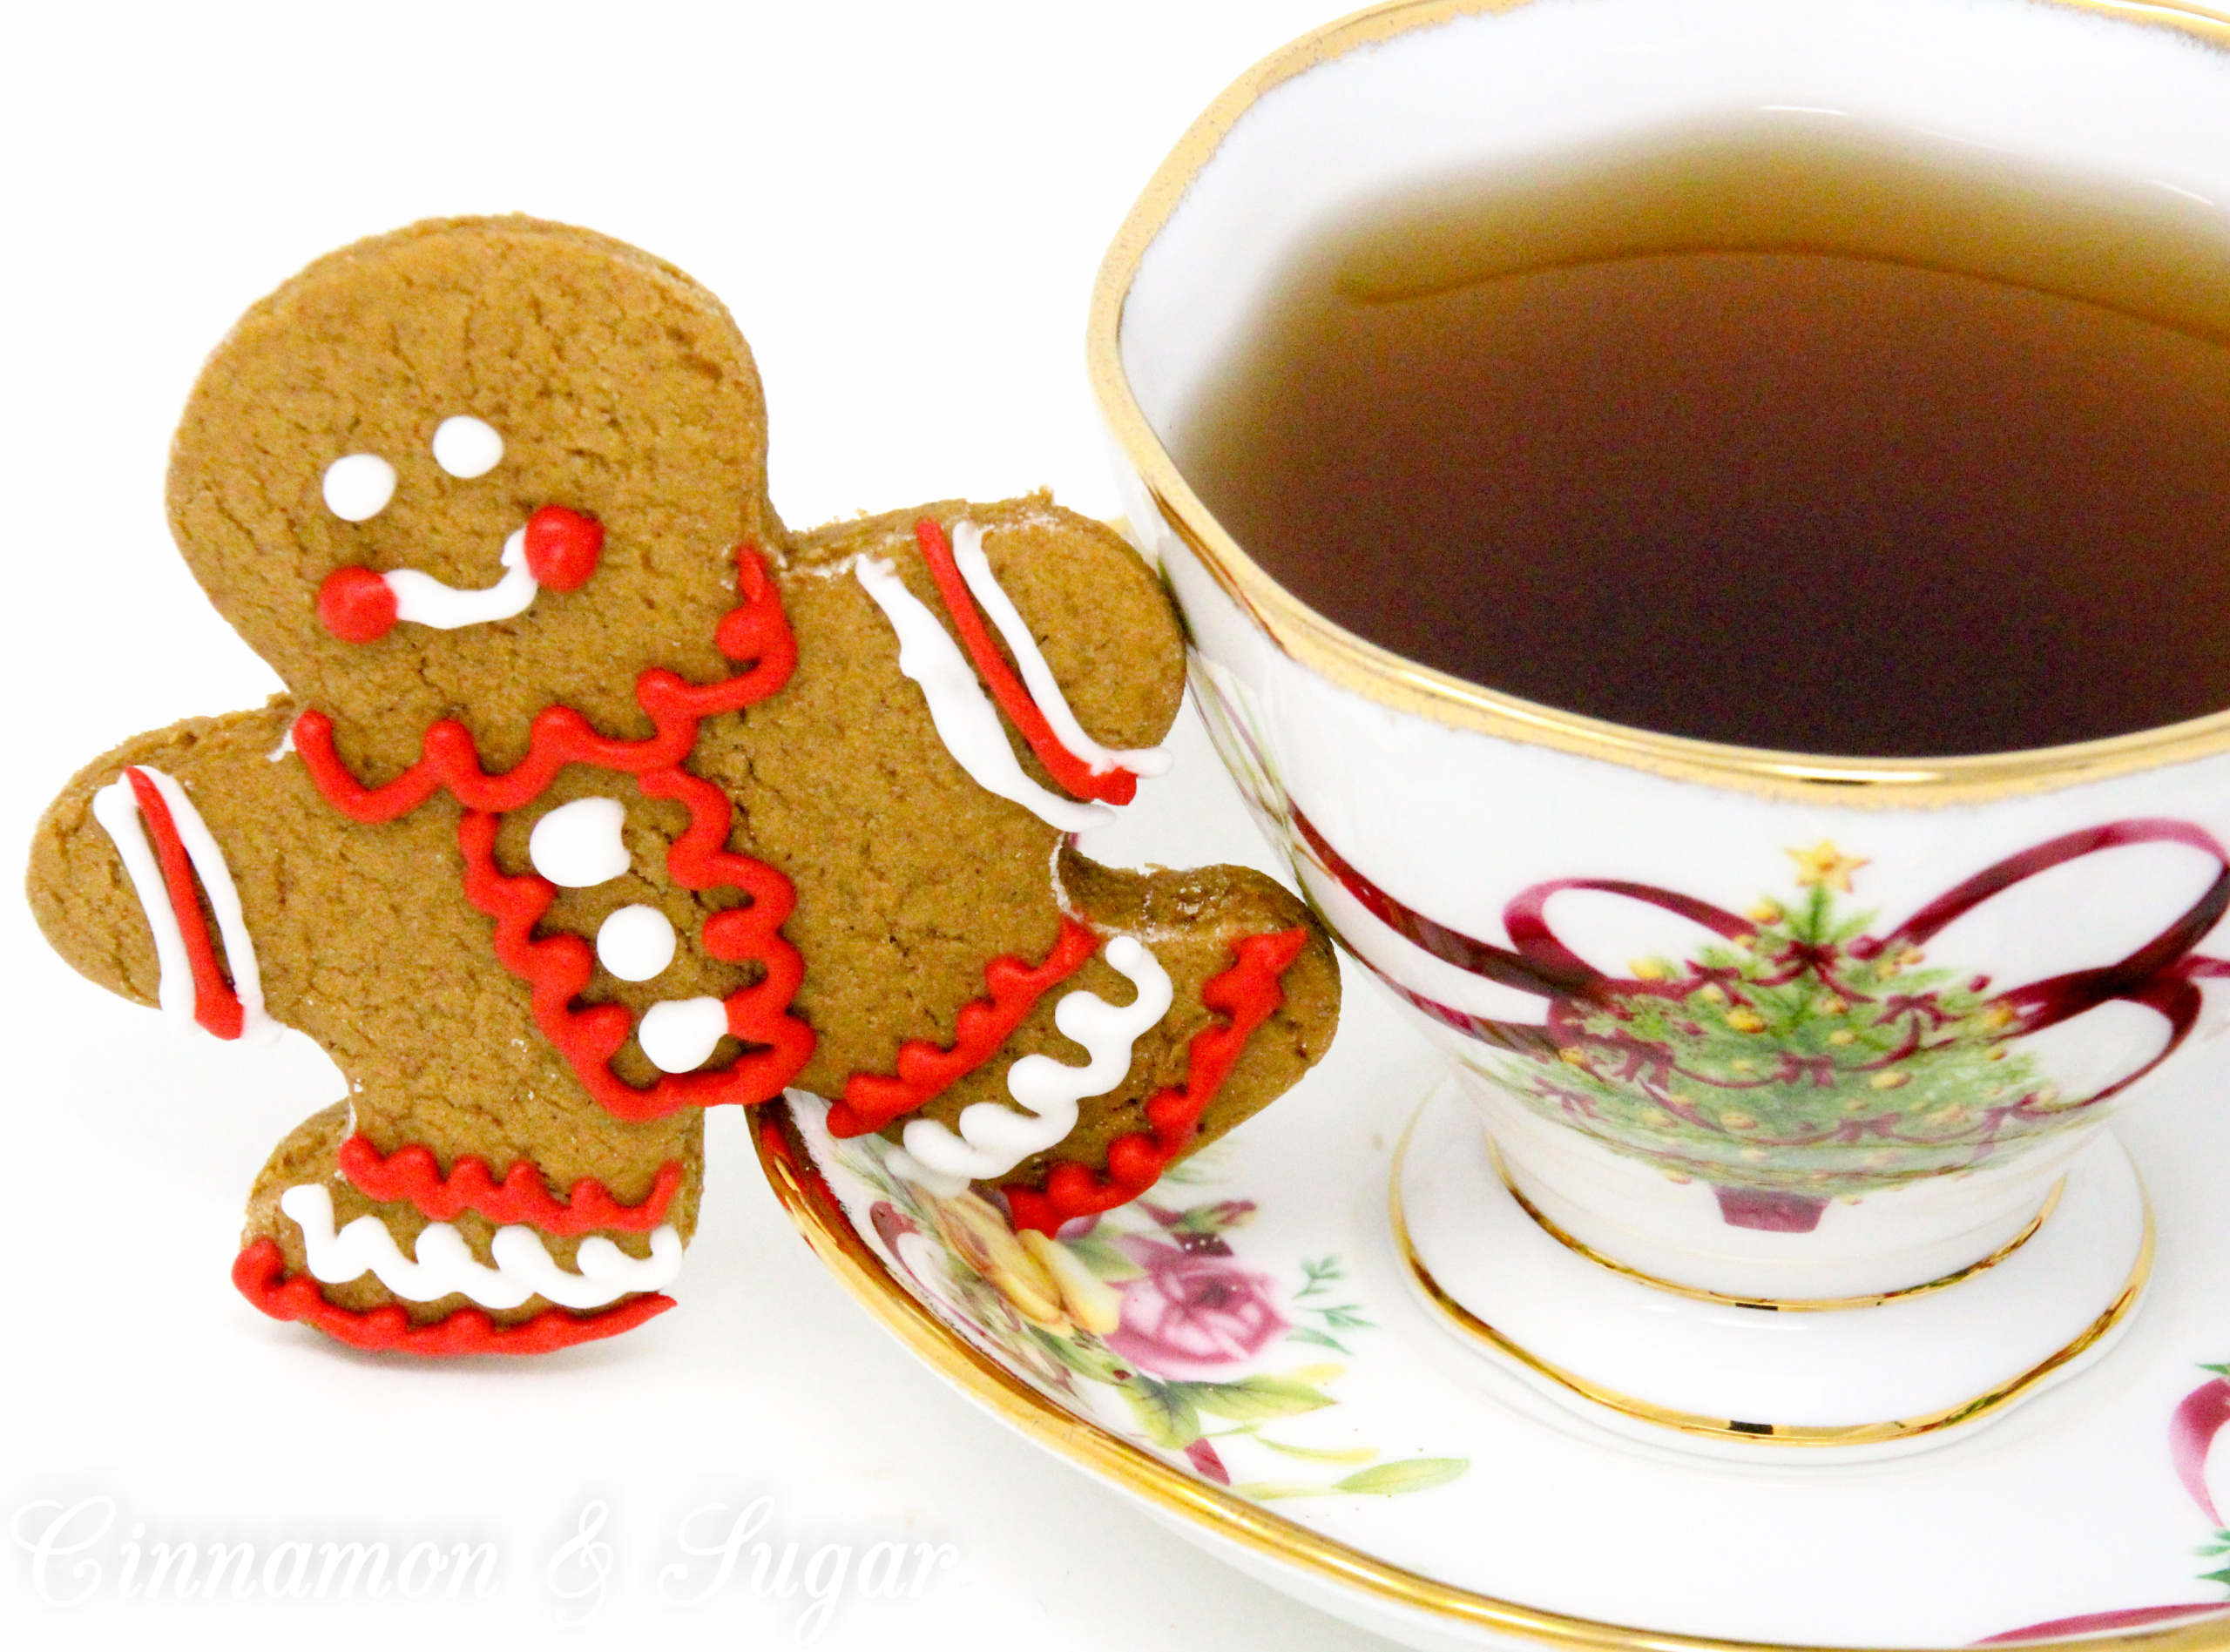 Gingerbread People are sweet, spiced cutout cookies that remain soft instead of overly crunchy. While gingerbread cookies are associated with Christmas, these yummy cookies are delicious anytime you desire a satisfying spiced cookie! Recipe shared with permission granted by Maddie Day, author of CANDY SLAIN MURDER.